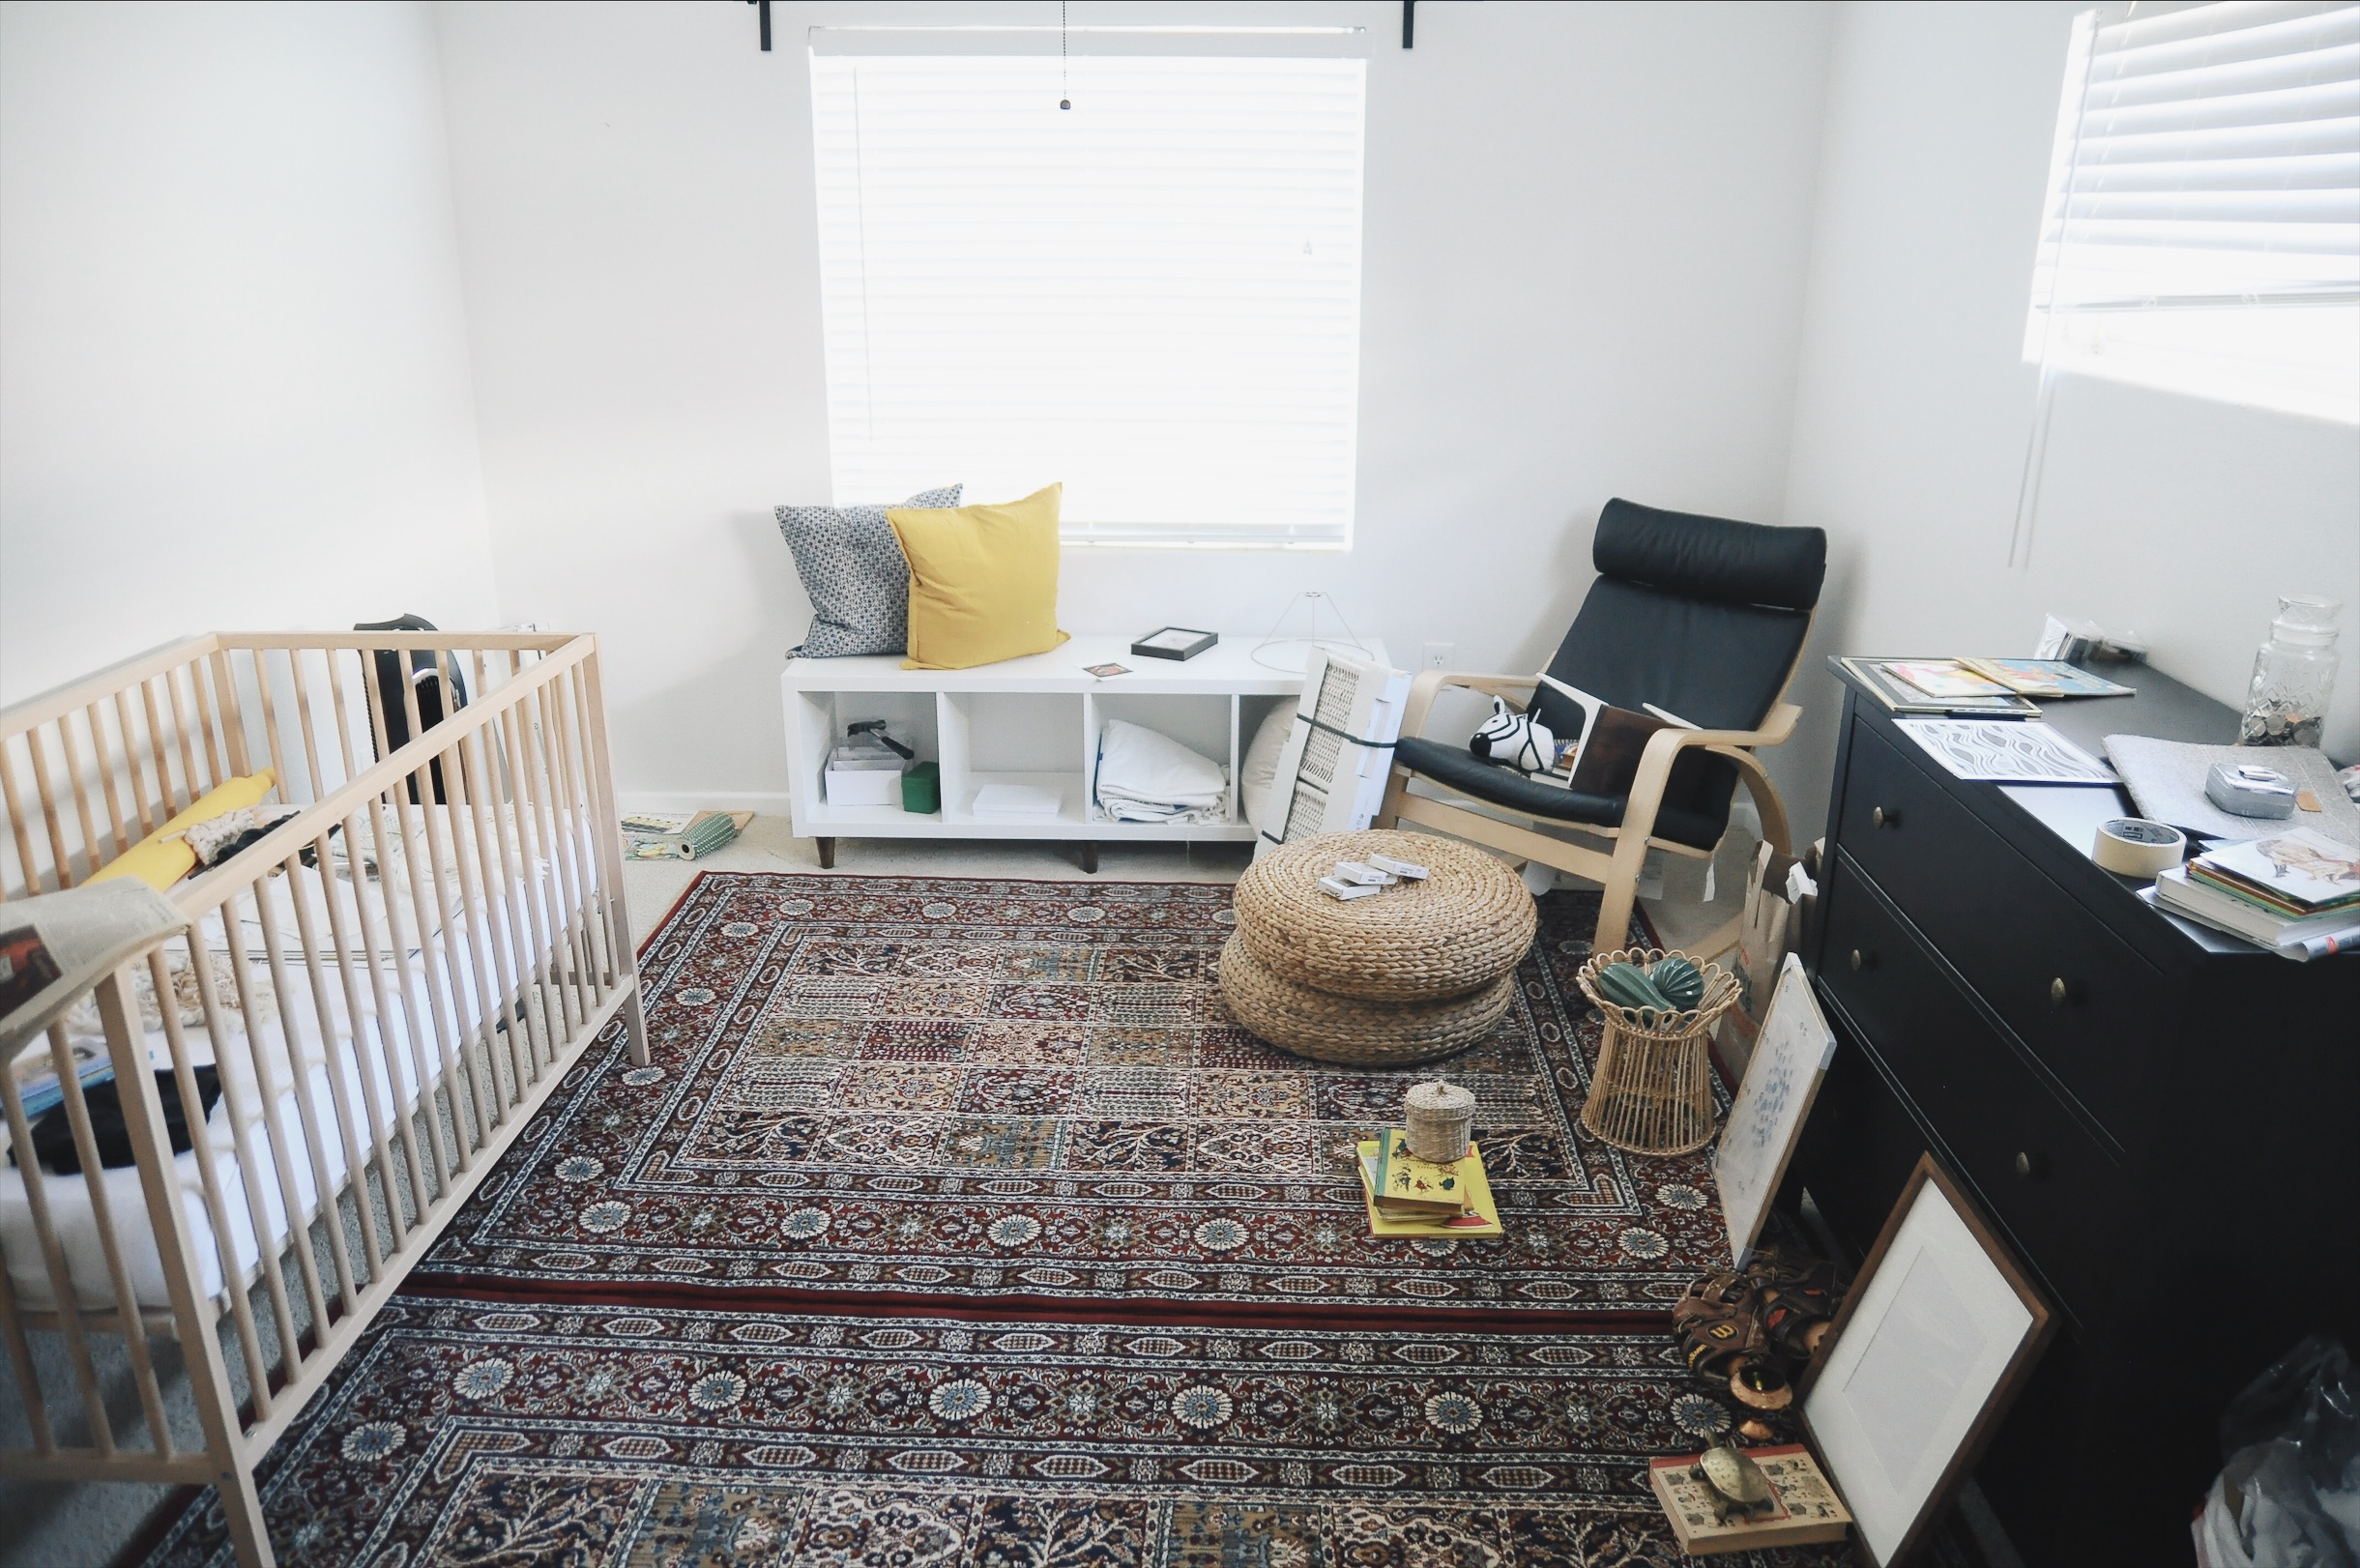 the furniture layout i finally settled on after adding the bench to the nursery.